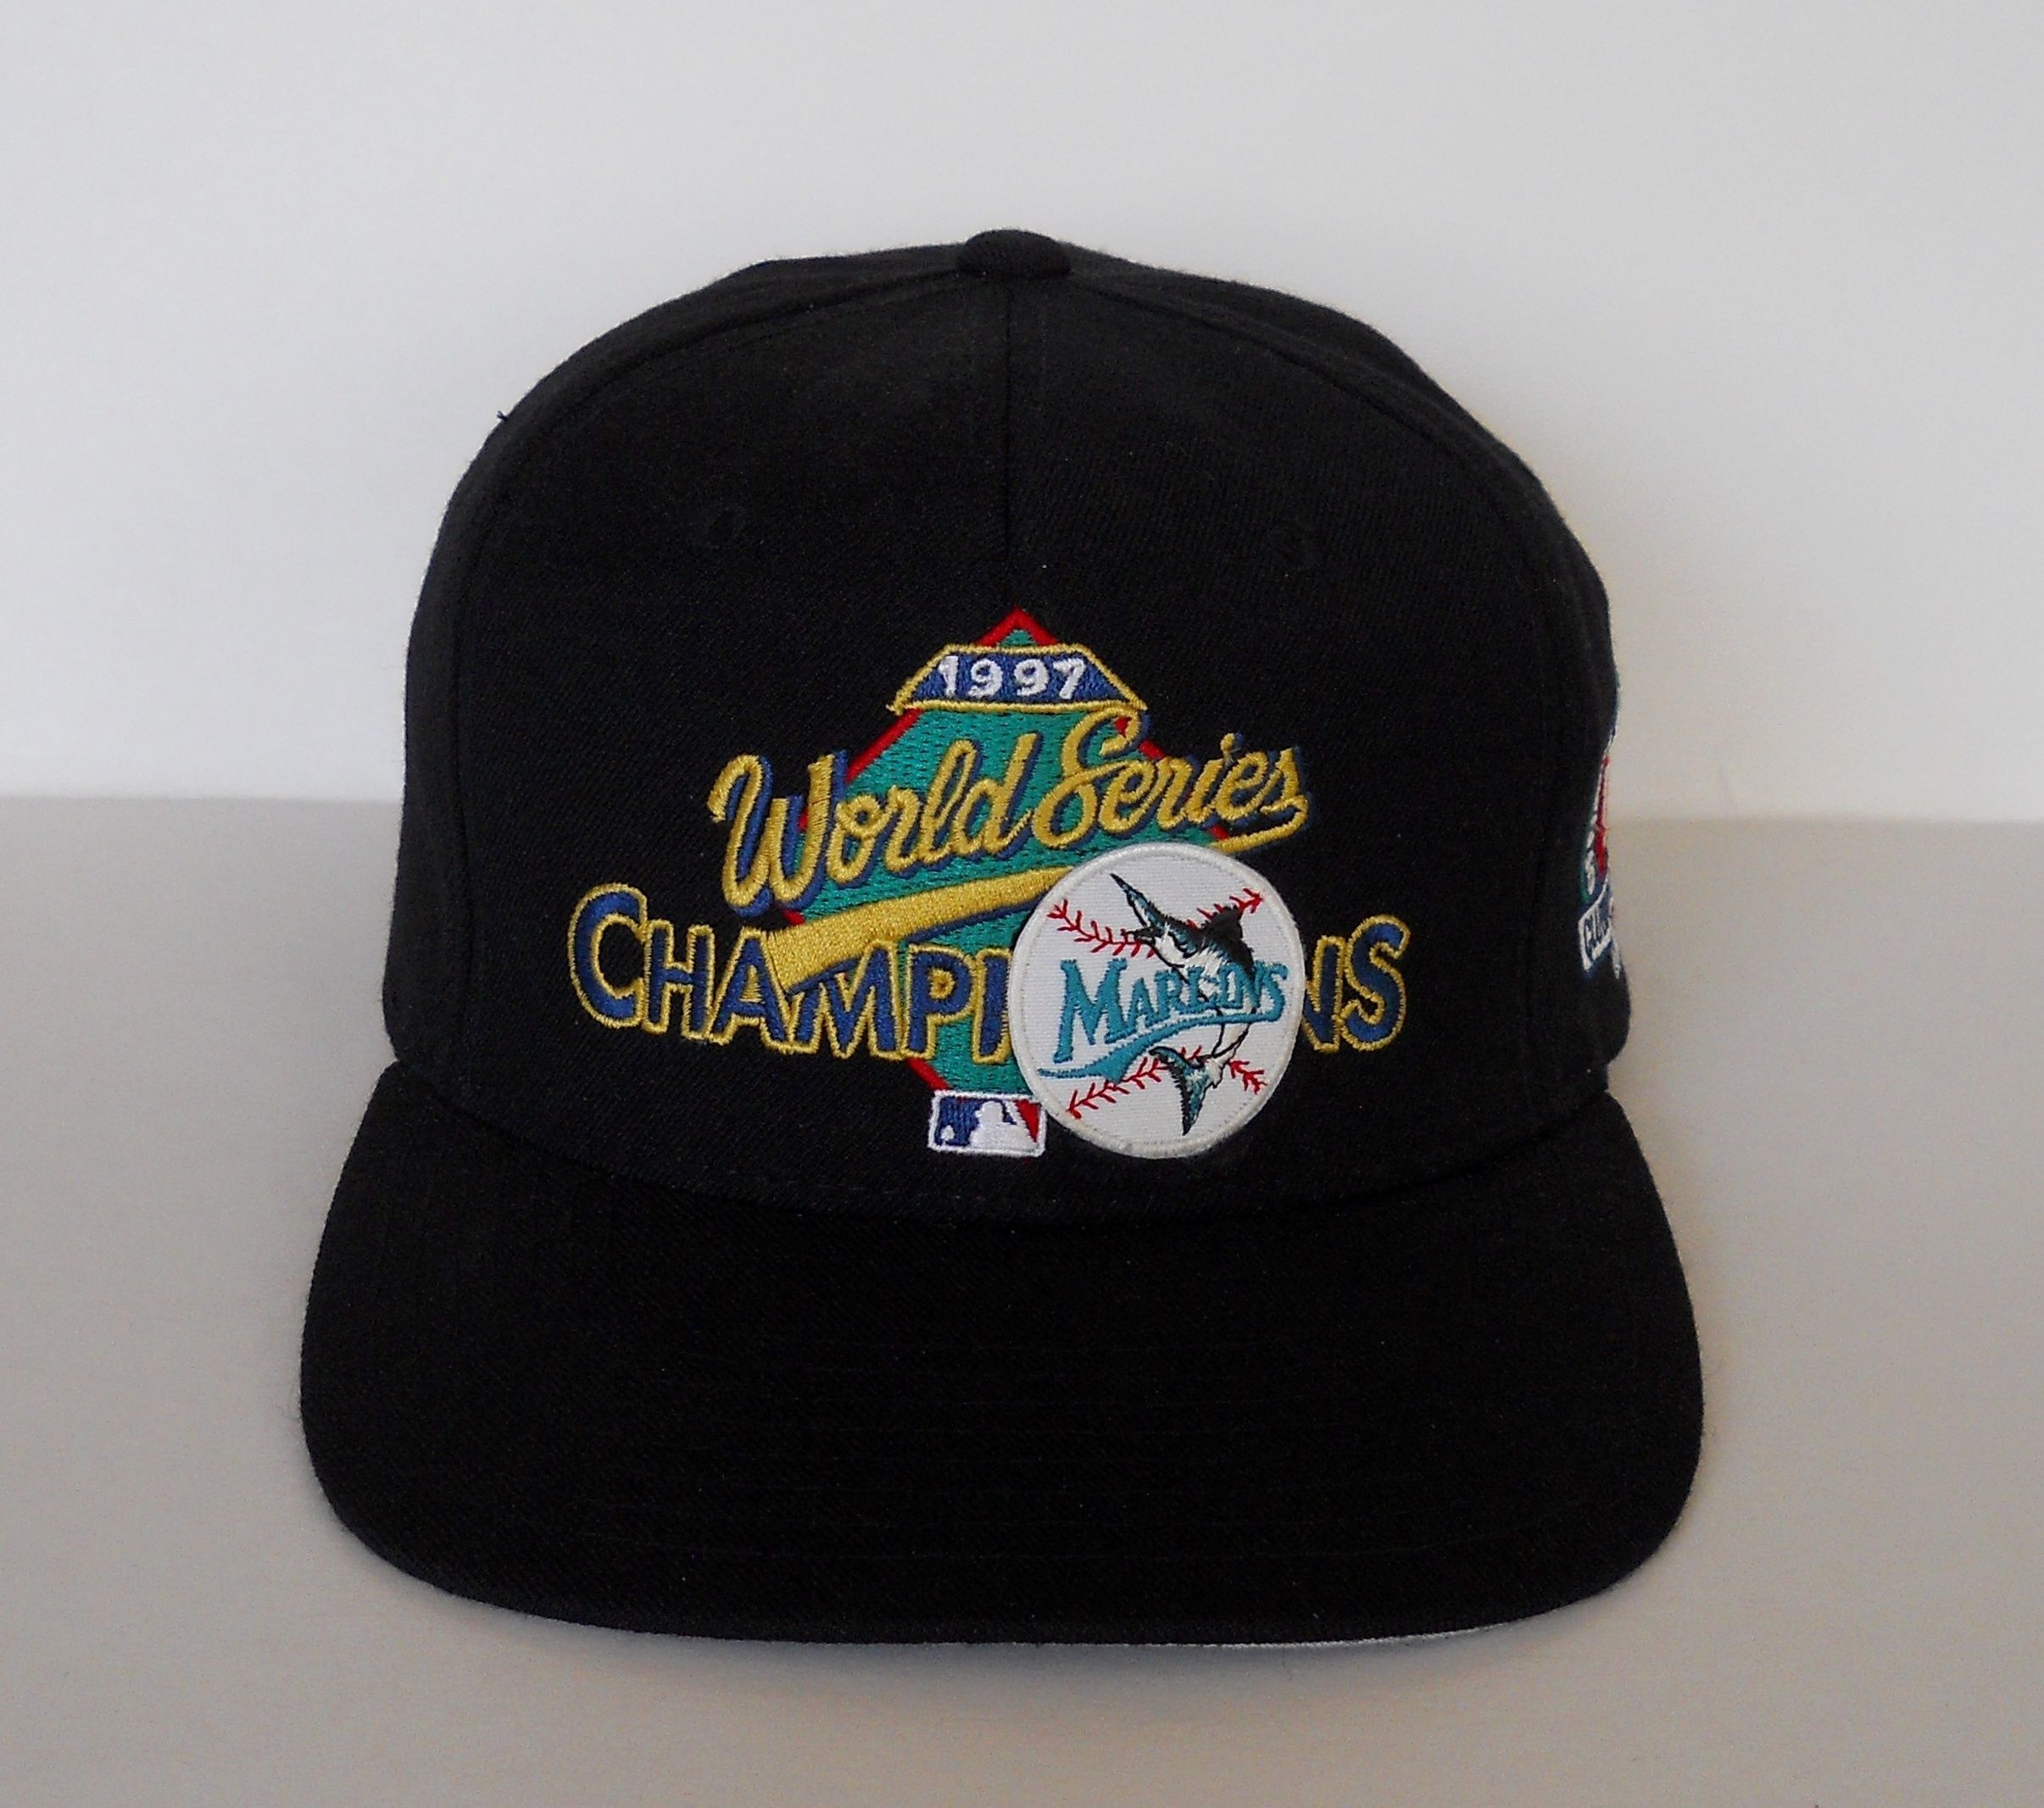 8c66c19c2 ... uk vintage florida marlins new era 1997 world series champions  clubhouse snapback pre owned 2e2a4 87f1b